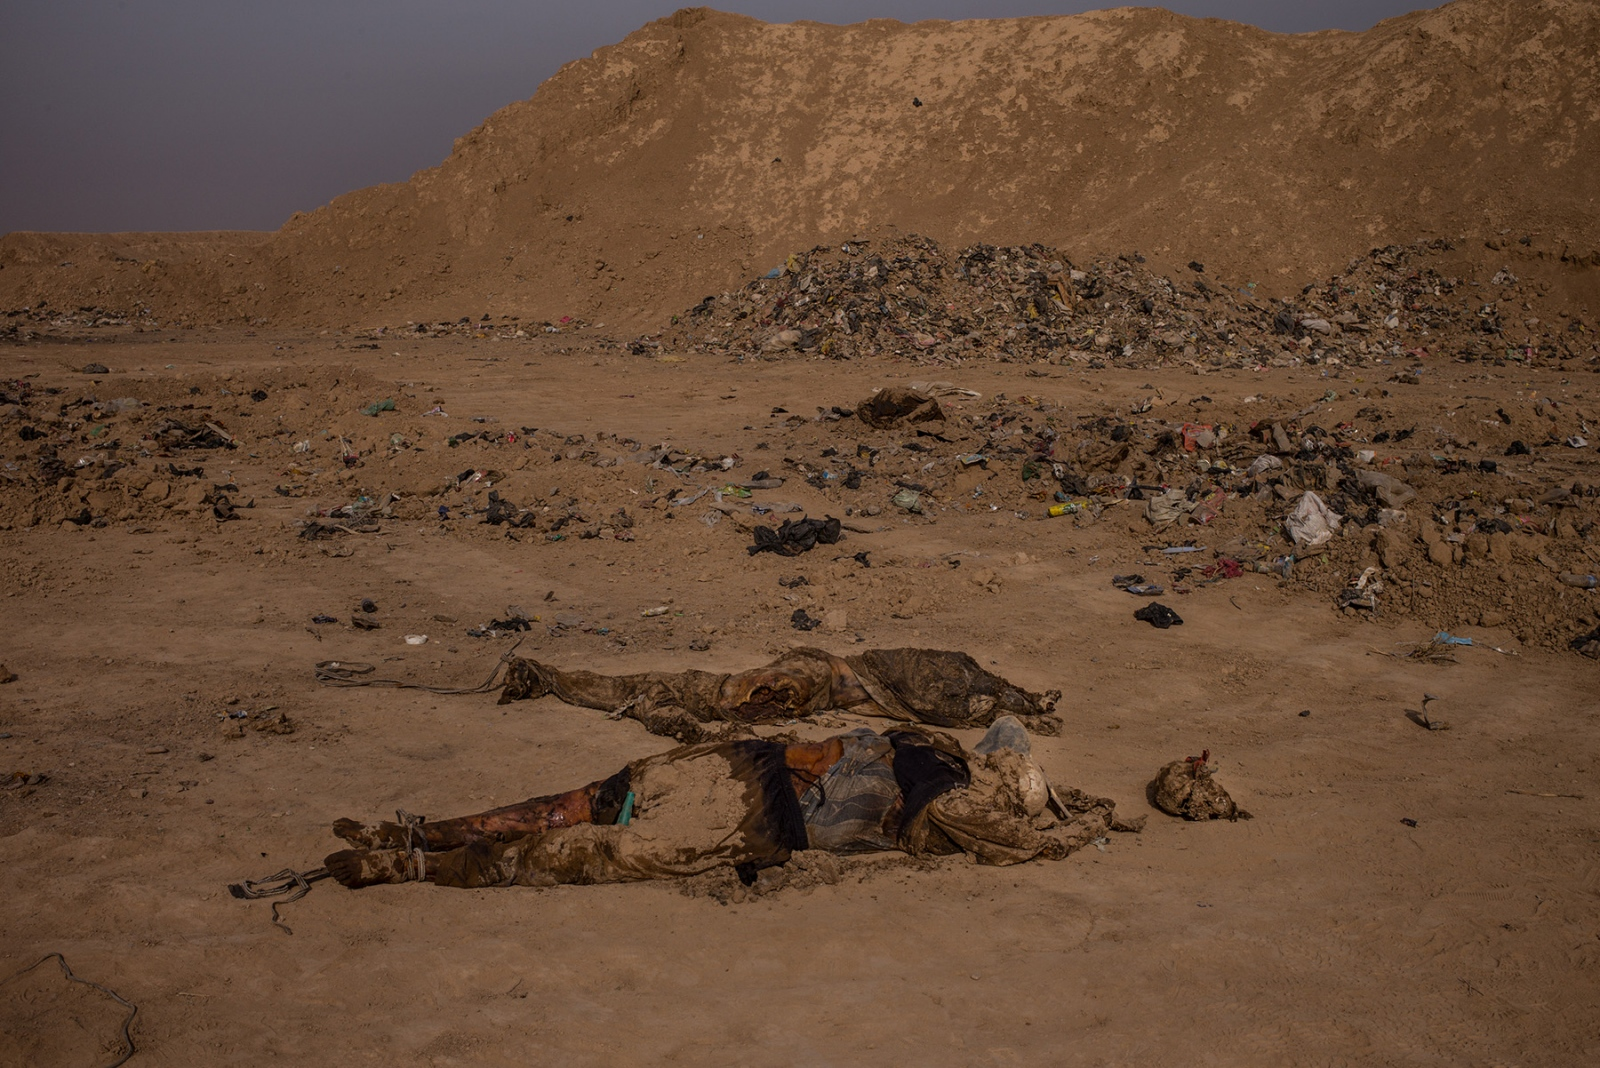 Two bodies lay in a garbage dump near the town of Hamam al Alil, which had been liberated from ISIS control two days earlier, as seen on November 9, 2016. The men appear to have been executed, with their arms and legs bound together and a cloth covering their eyes. They remained unidentified at the time the image was taken but were believed to have been former police officers, executed by ISIS as they retreated further in to Mosul. Some mass graves have been found as the Iraqi Army advances on the city, a chilling reminder of the brutalities ISIS inflicts.